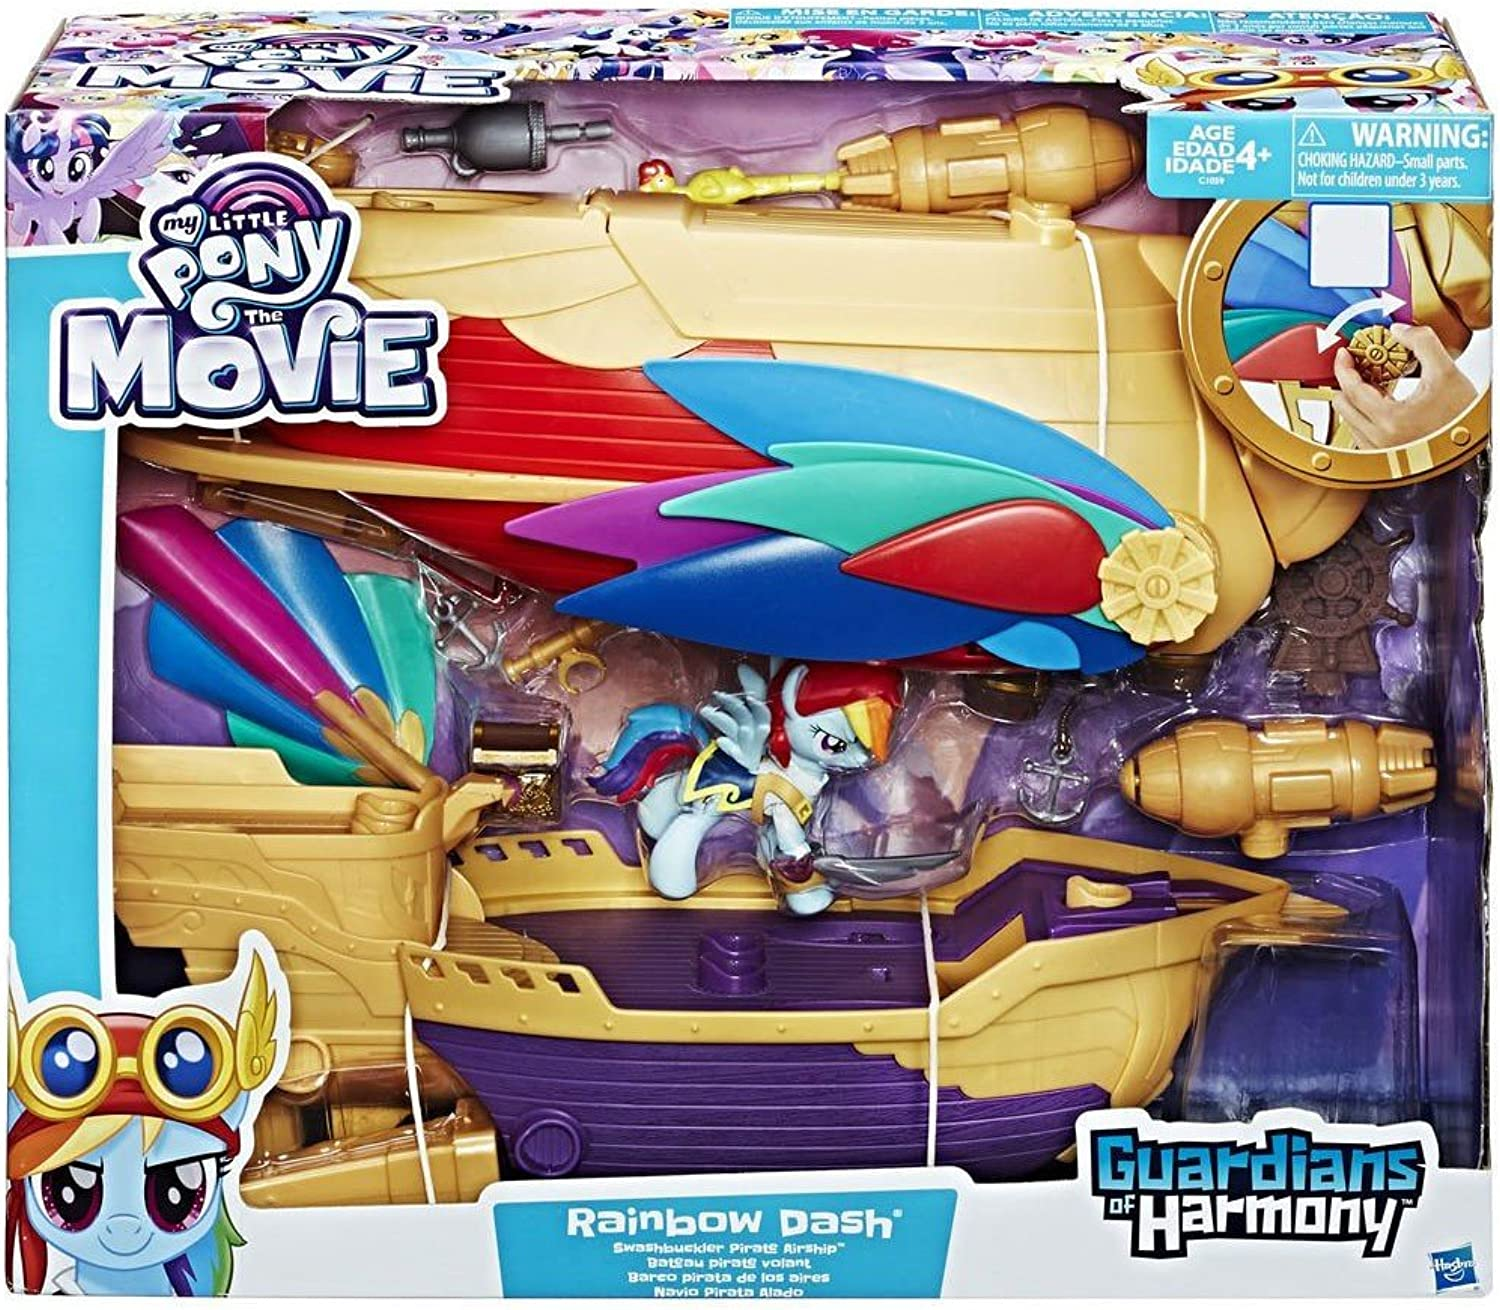 My Little Pony  The Movie - Rainbow Dash - Swashbuckler Pirate Airship - Includes Vehicle, Rainbow Dash Figure, and 12 Accessories.